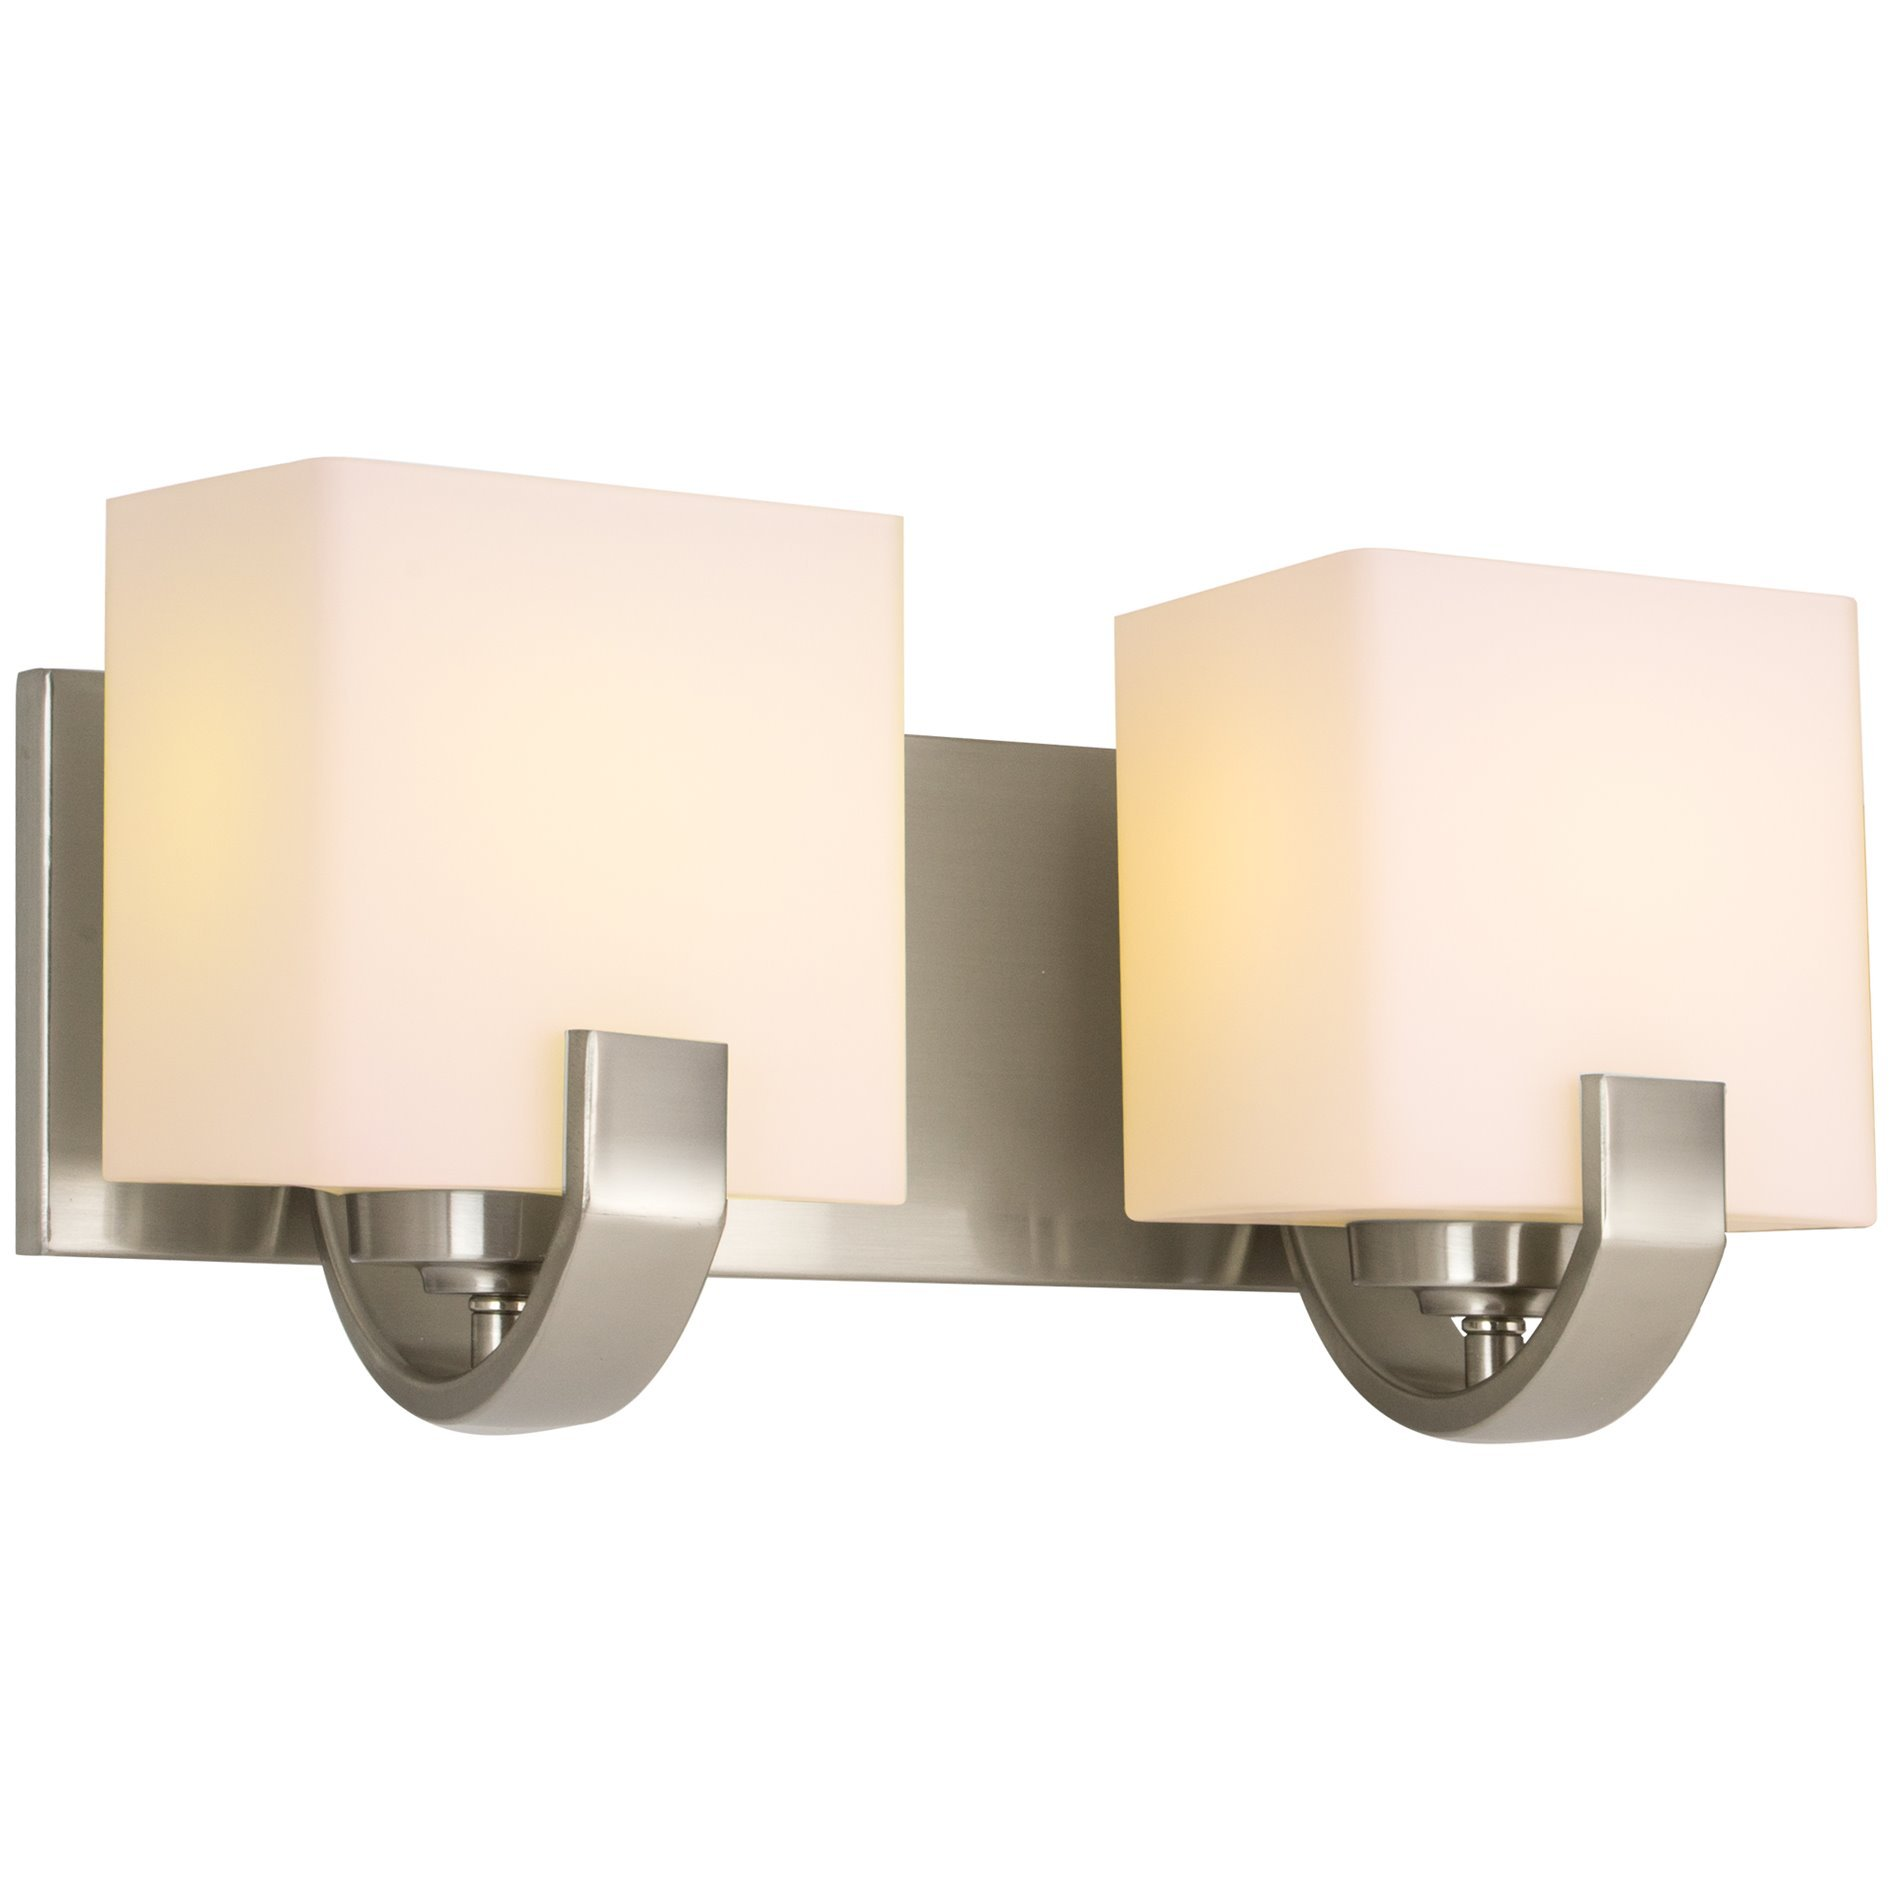 Revel Caroline 16'' 2-Light Contemporary Vanity/Bathroom Light, Brushed Nickel Finish by Kira Home